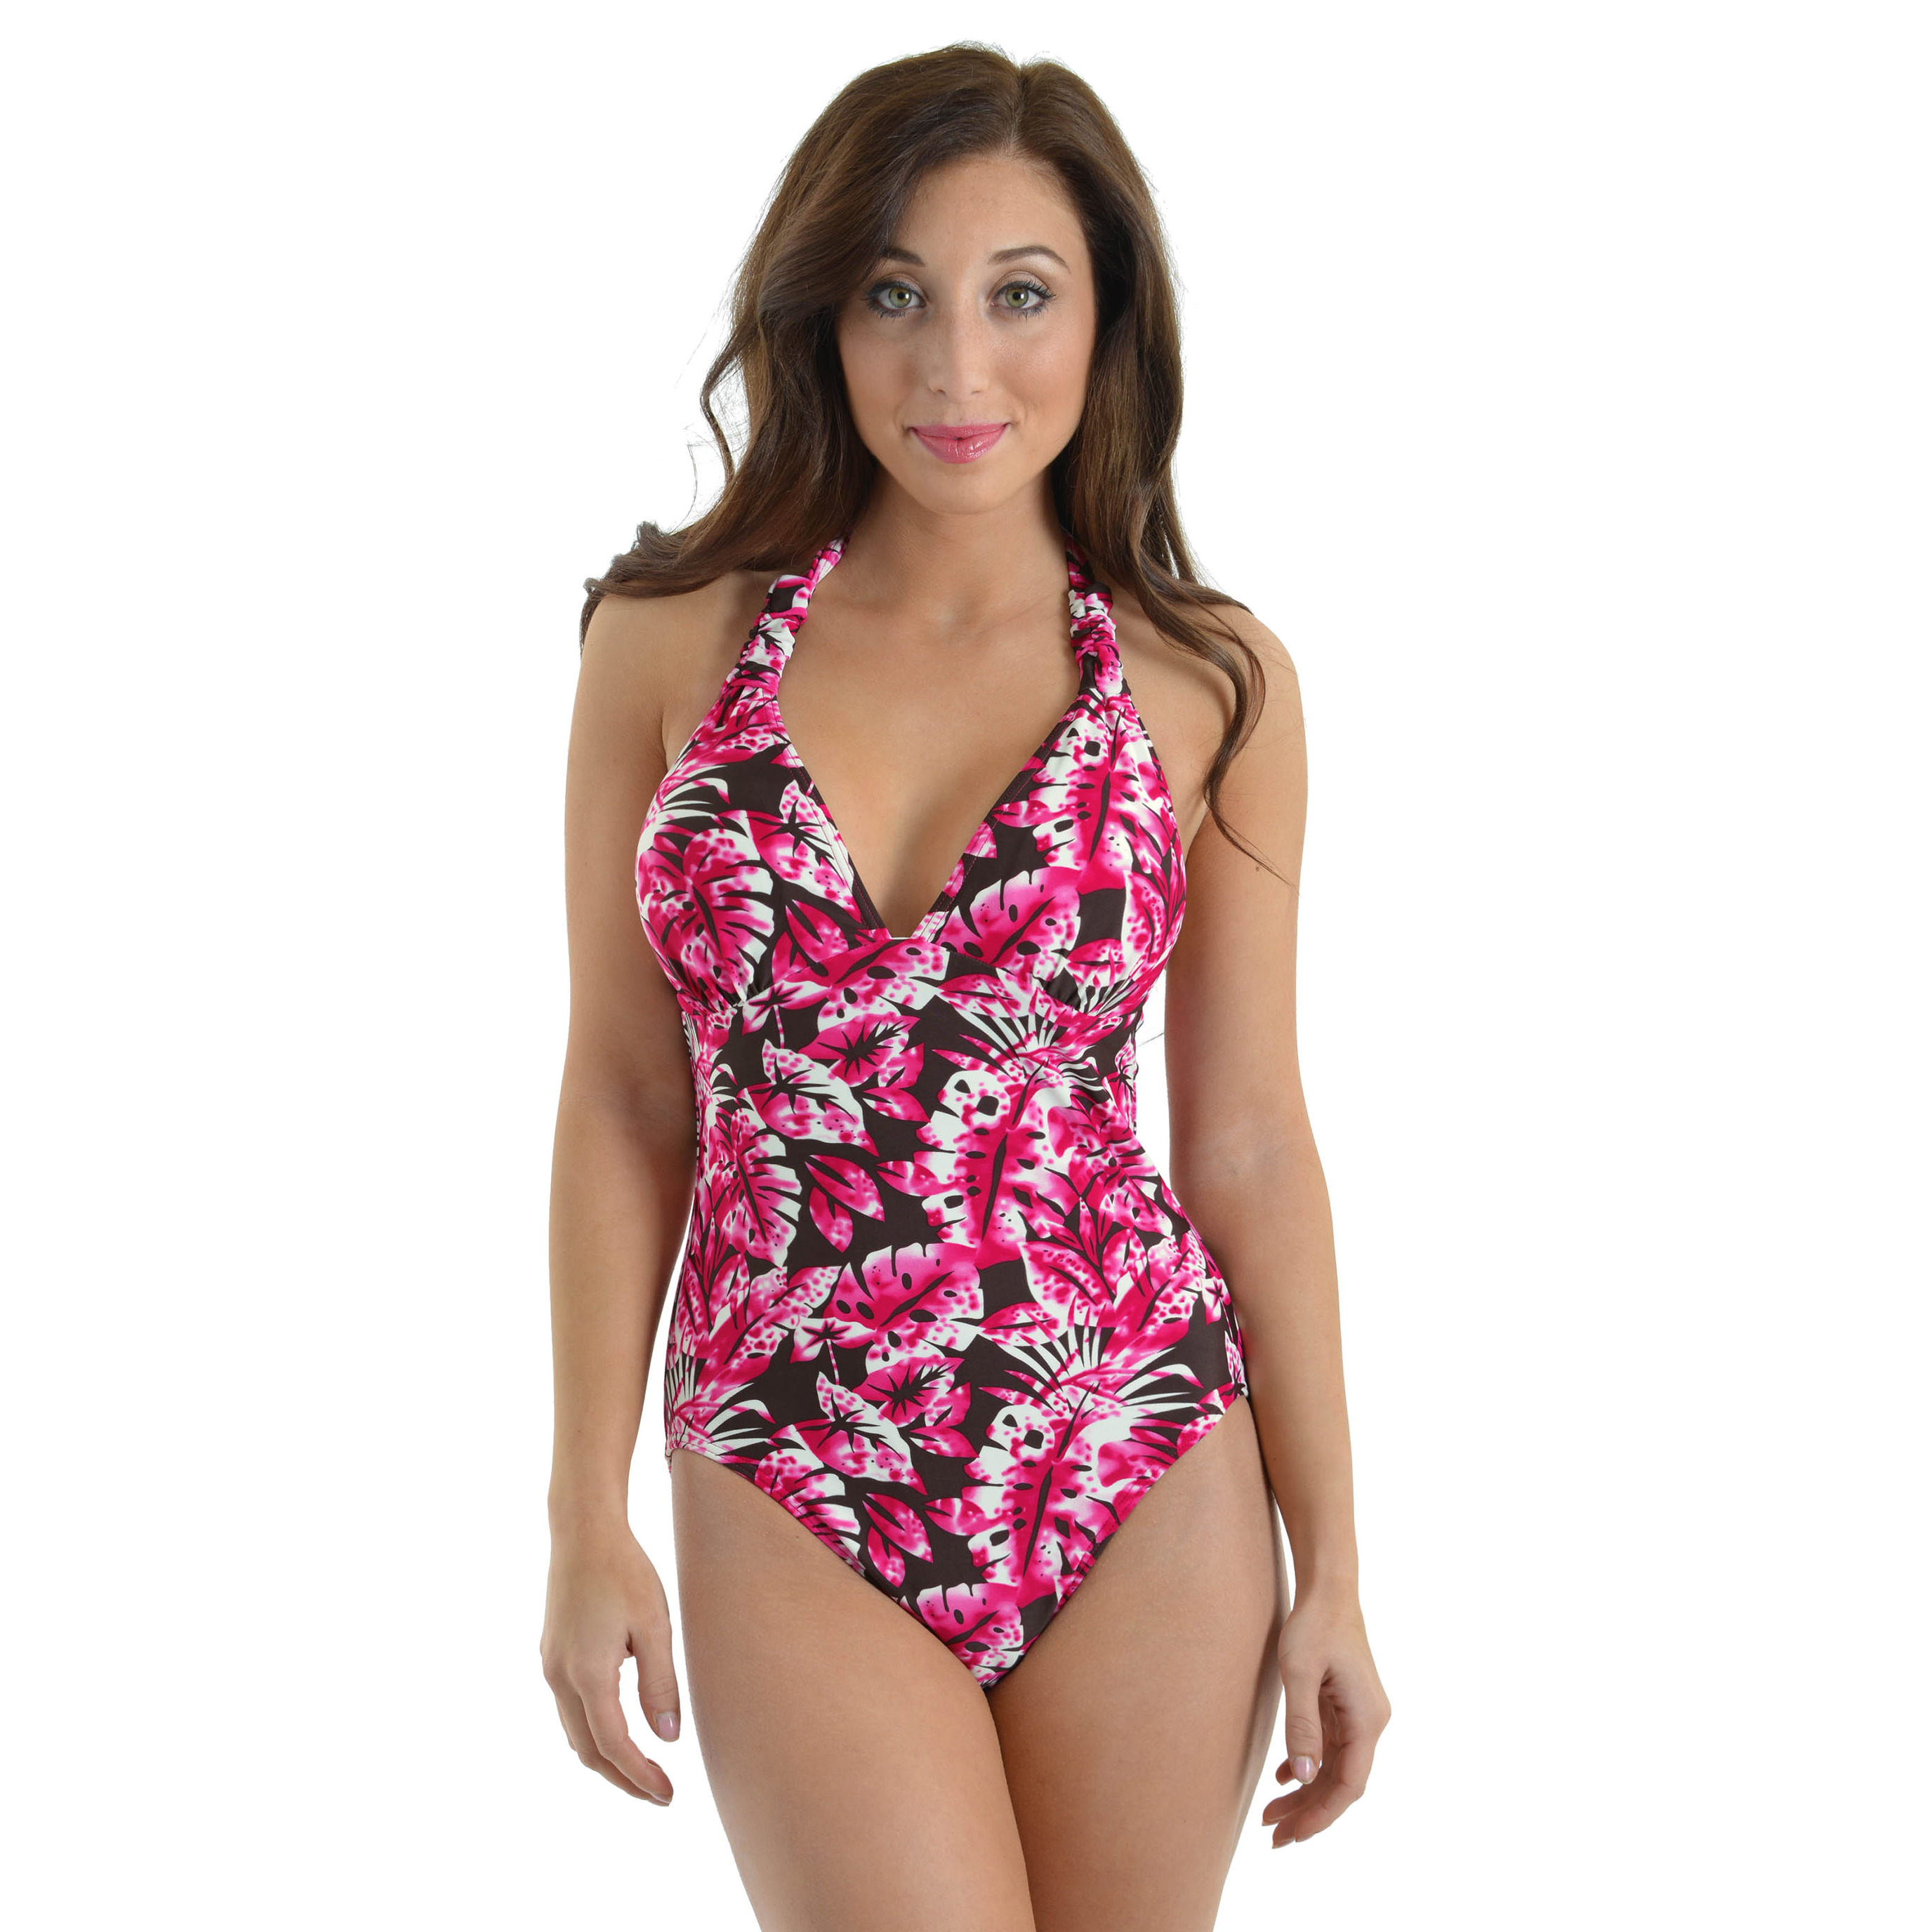 Caribbean Sand Womens Hawaii 1 Piece Swimsuit Halter Pink Tropical Bathing Suit